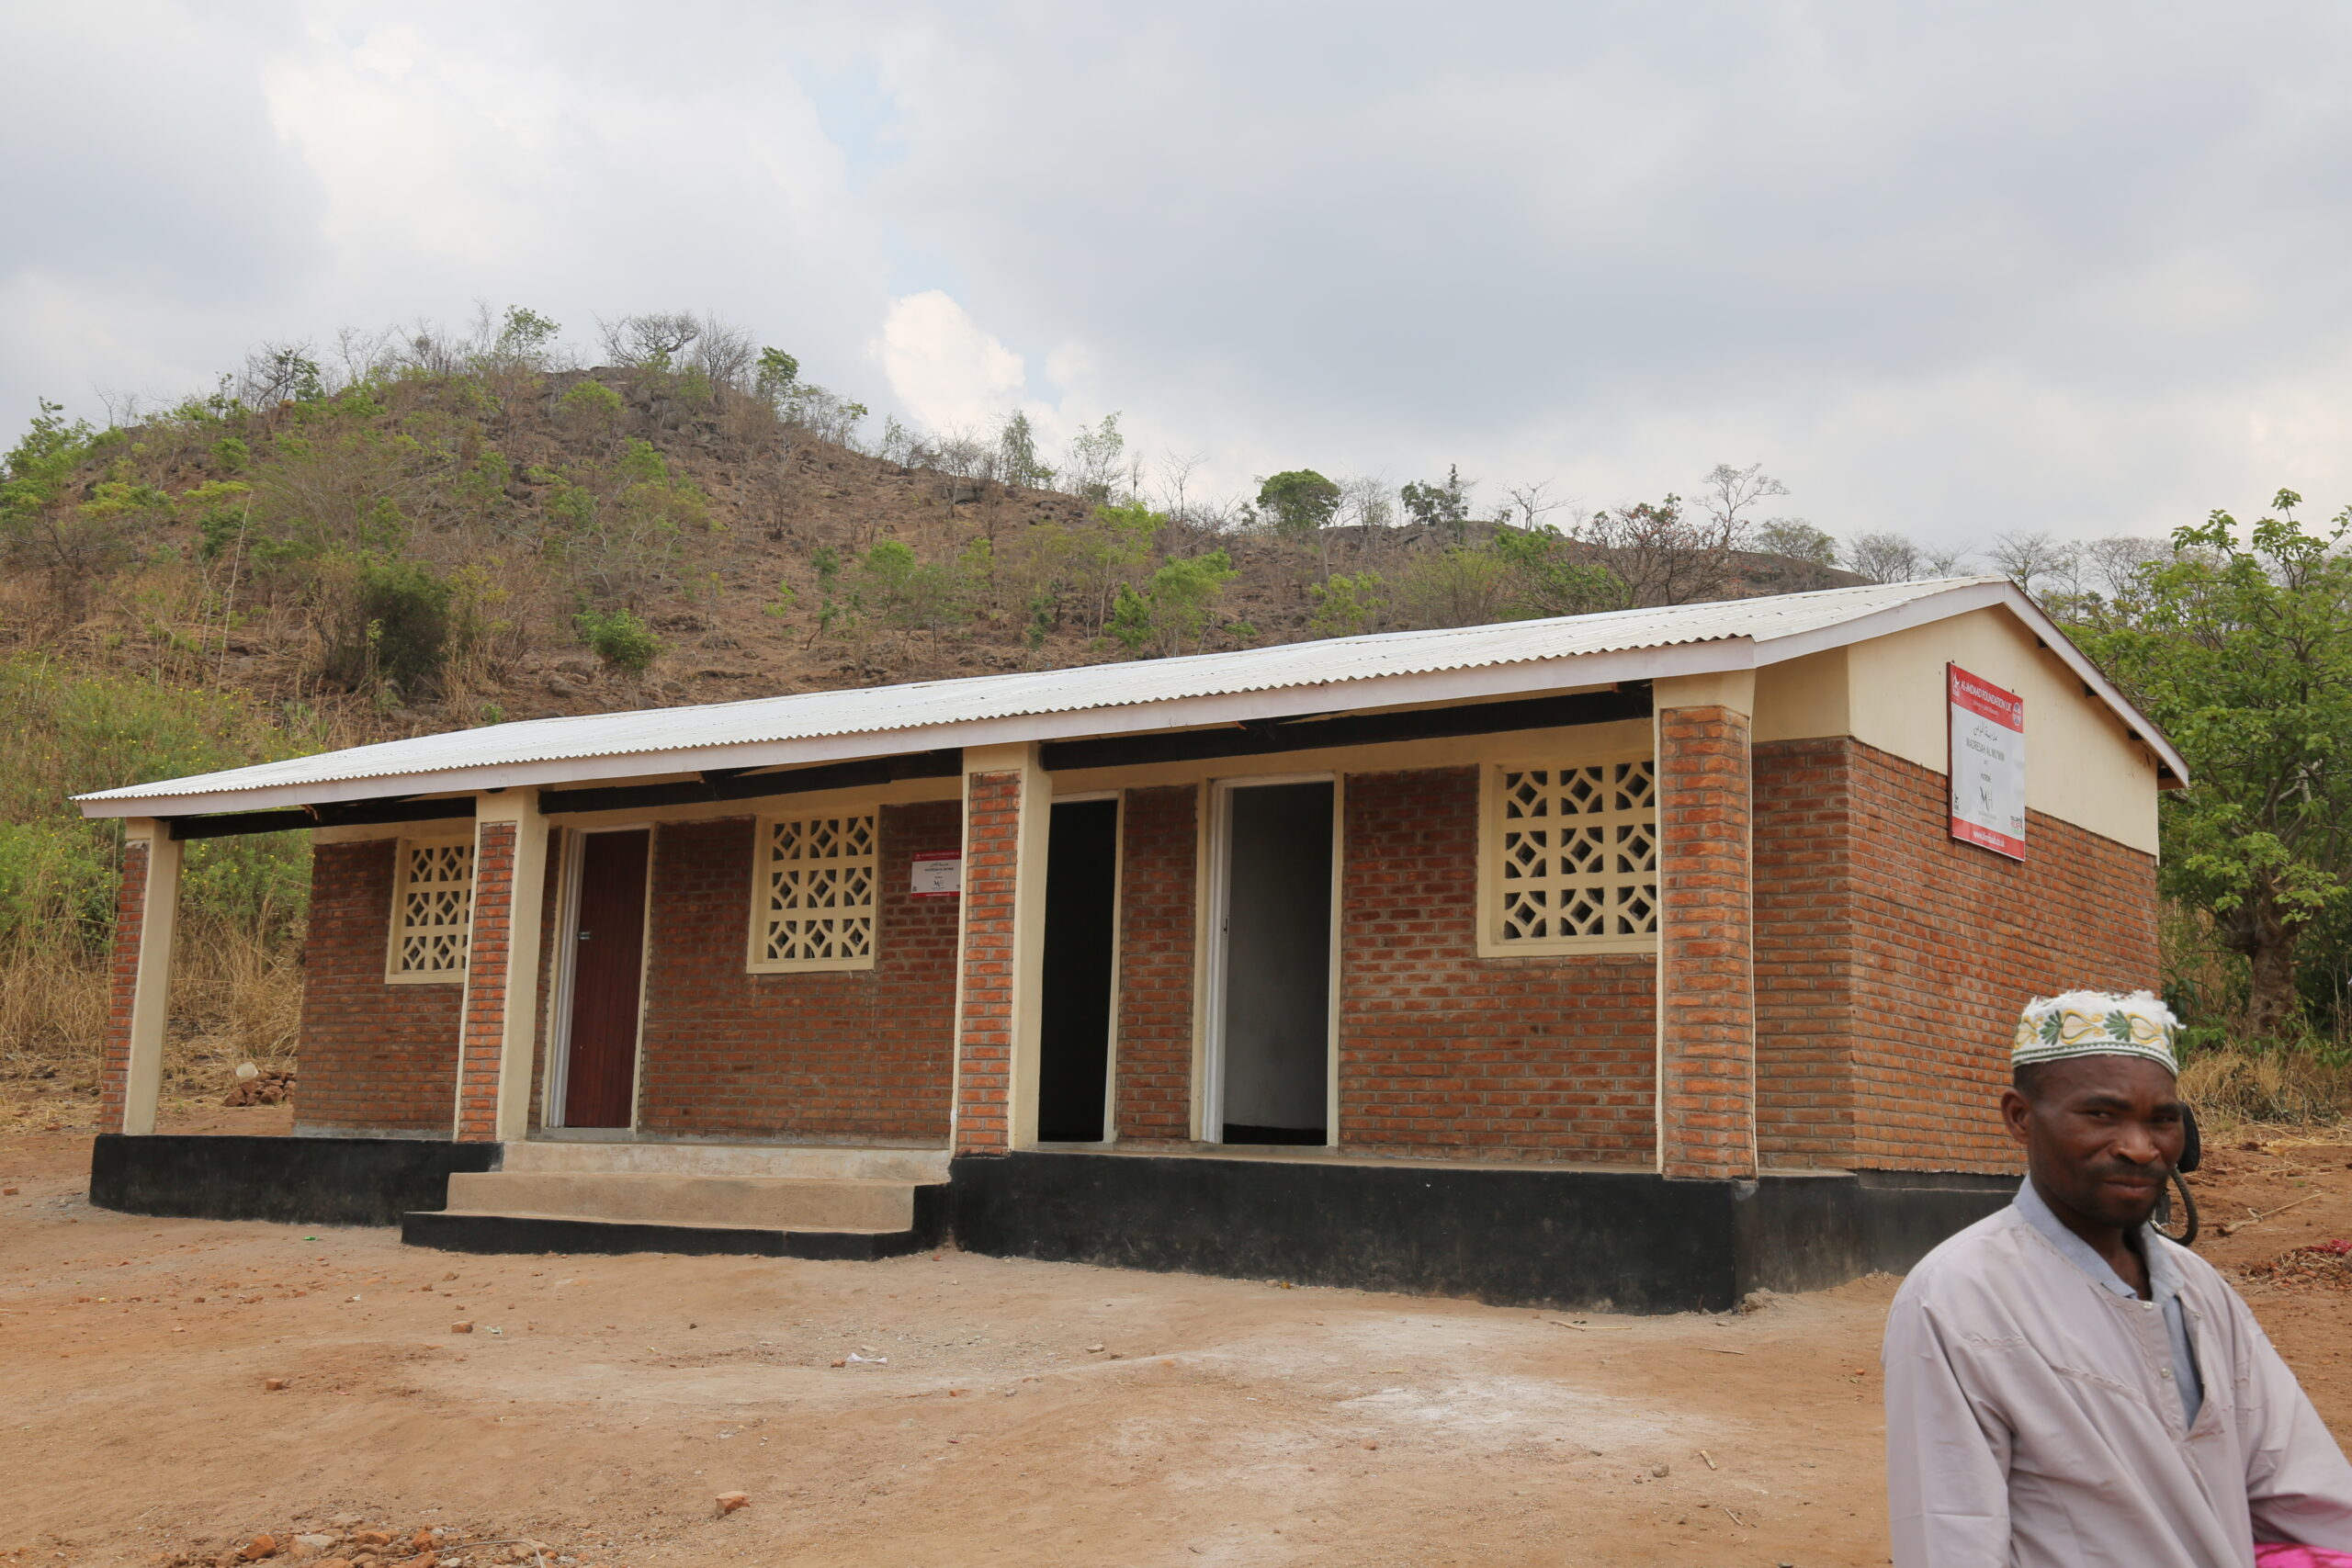 4A1A9030 scaled 4A1A9030 - Malawi Relief Fund UK